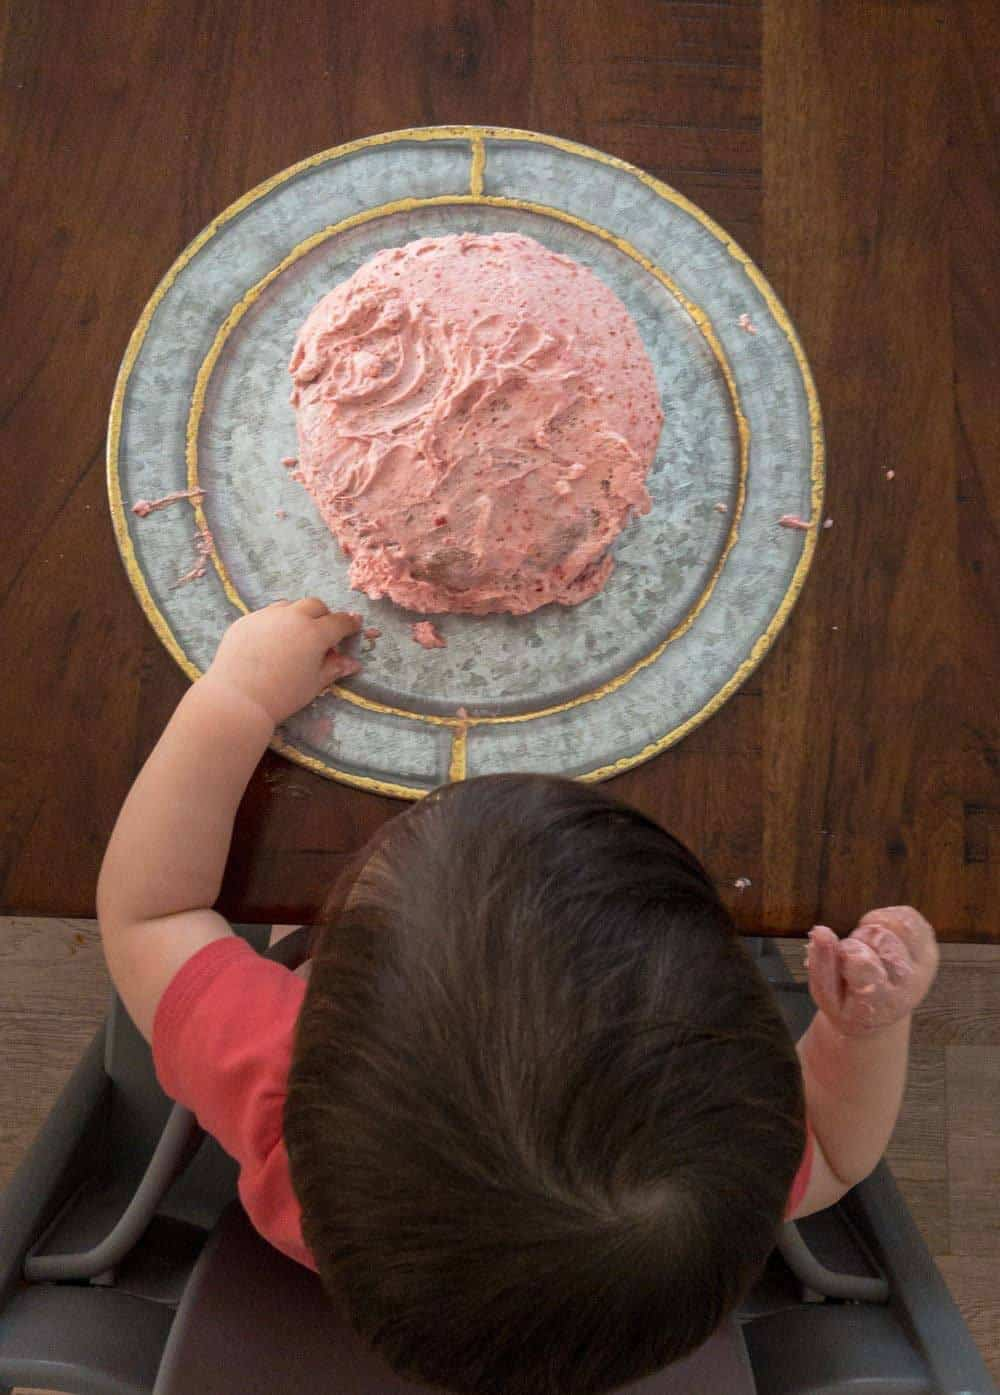 This easy and healthy fruit-sweetened smash cake is a great option for your baby's 1st birthday. Fruit-sweetend with bananas and strawberries, and a simple whip cream frosting to top it off! #firstbirthdaysmashcake #healthycake #fruitsweetened #nosugar